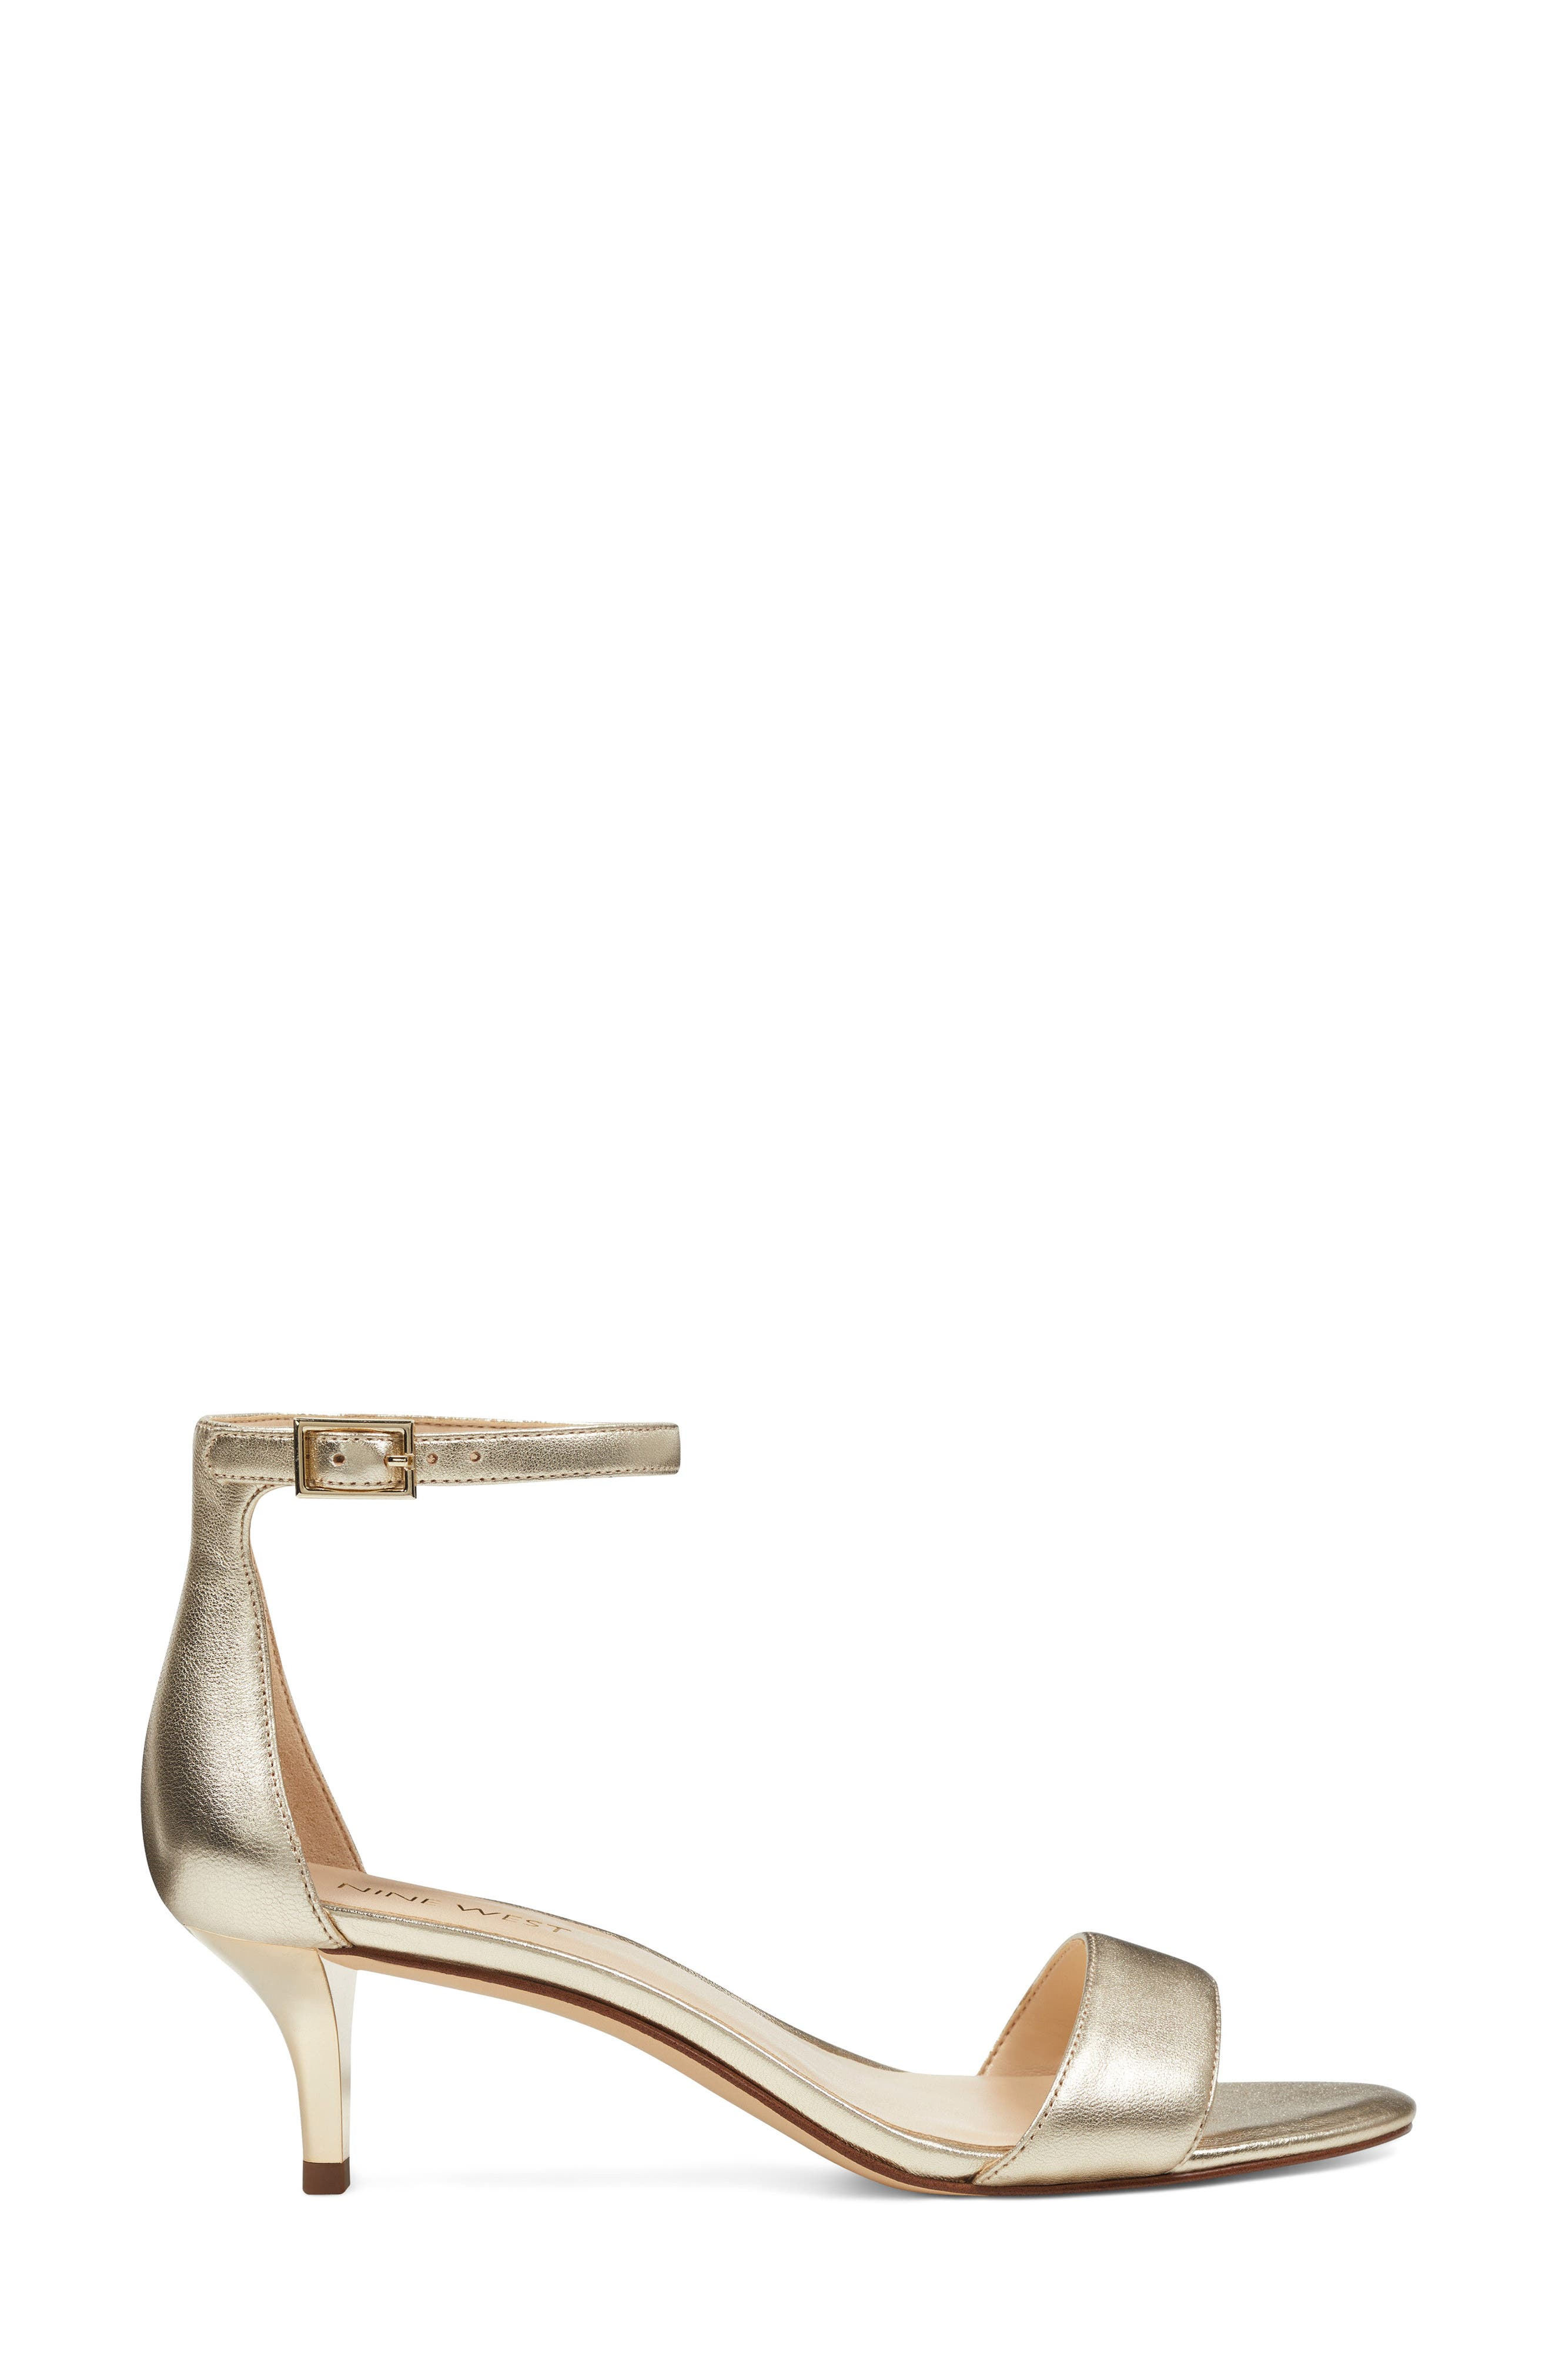 'Leisa' Ankle Strap Sandal,                             Alternate thumbnail 3, color,                             711